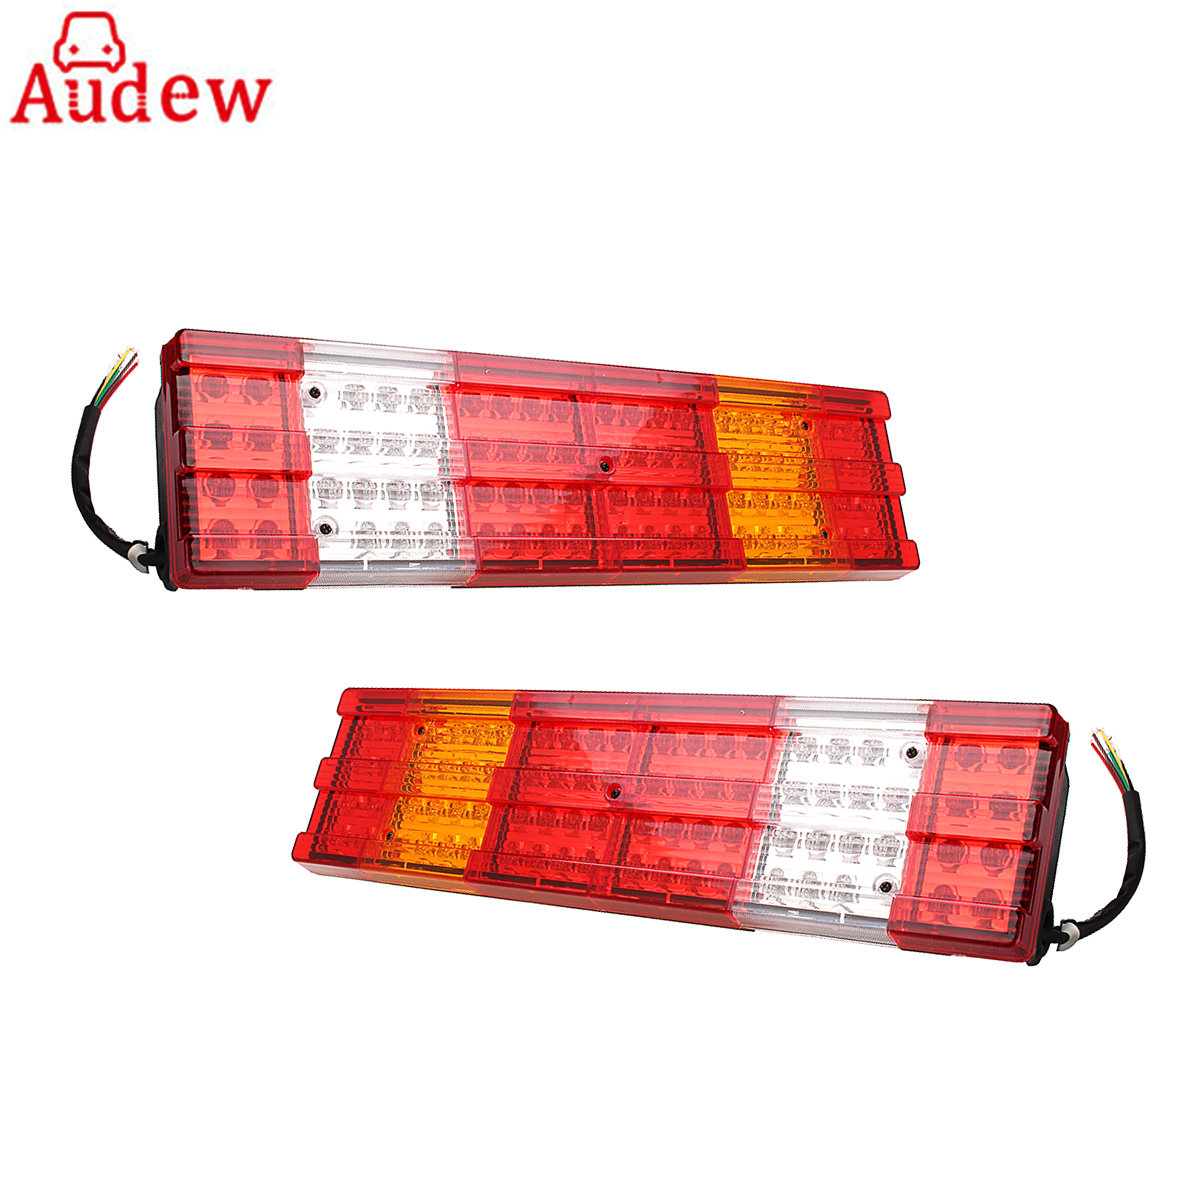 2x Rear Light Pickup Rear Tailgate Light for Fiat Iveco Daily Lorry